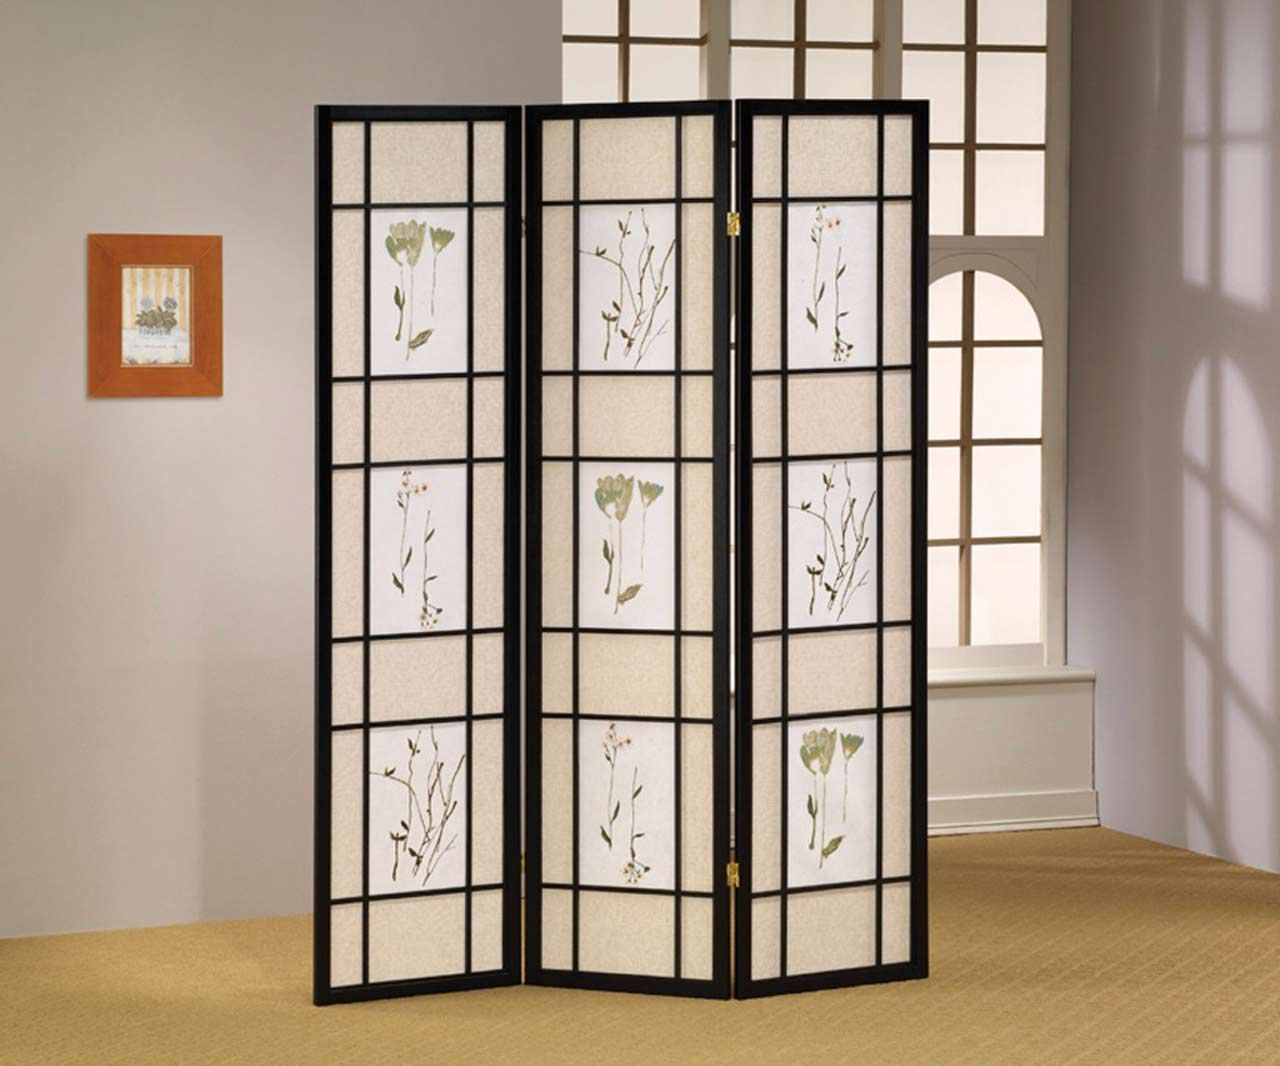 Best retro room divider design ideas lookmyhomes